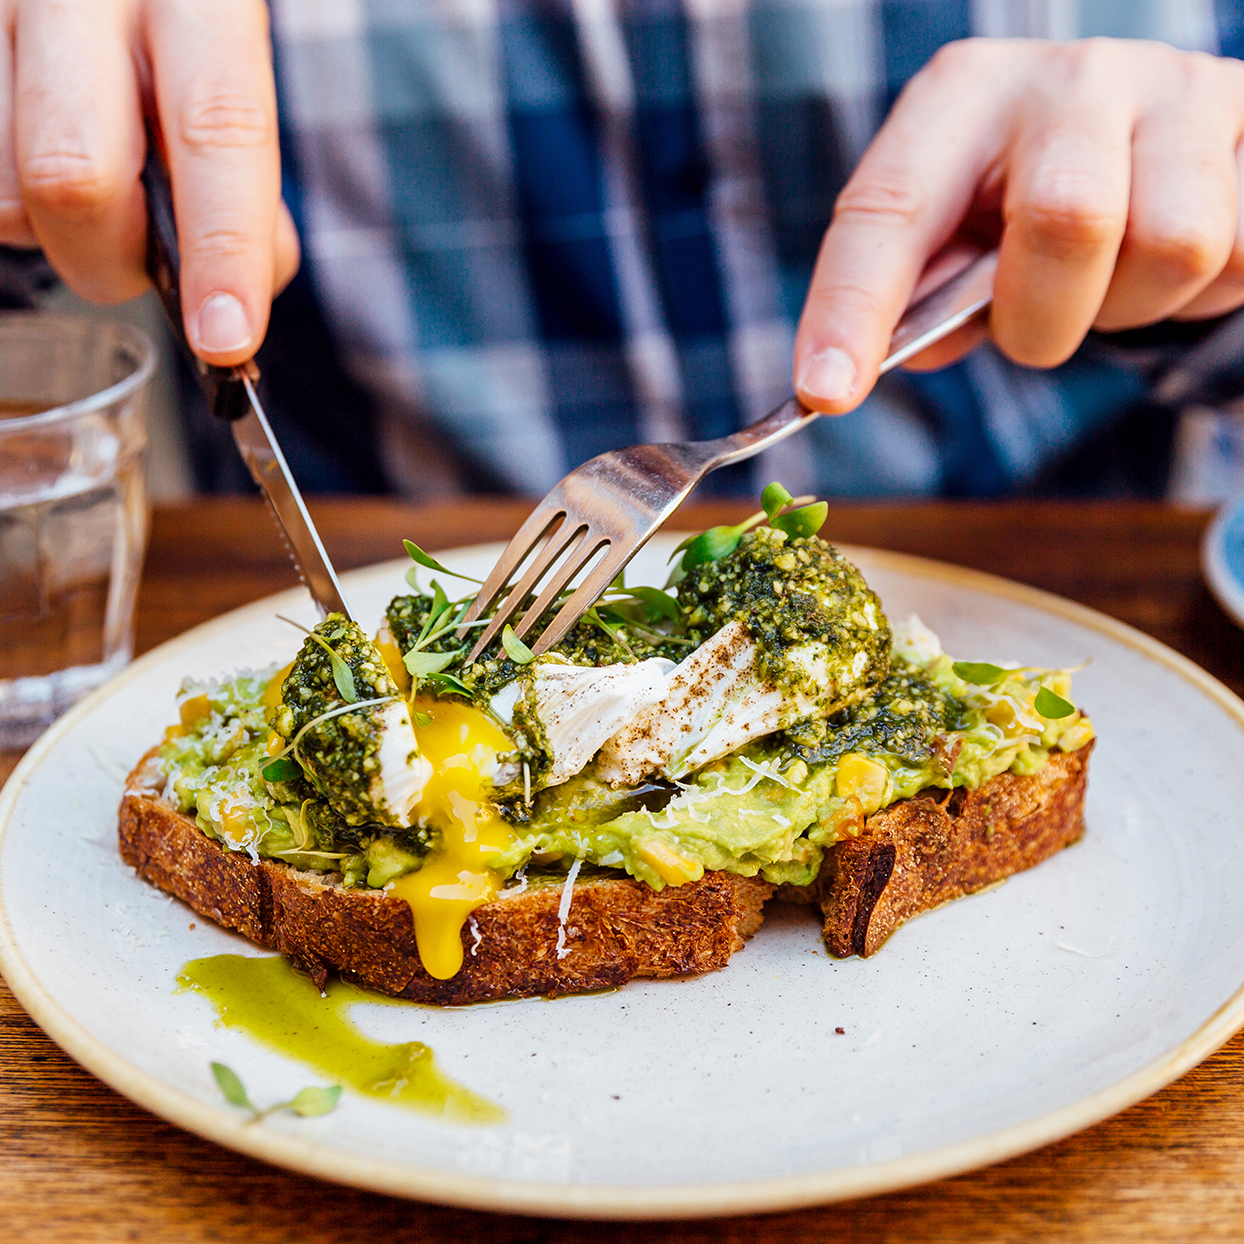 Eating avocado toast with an egg